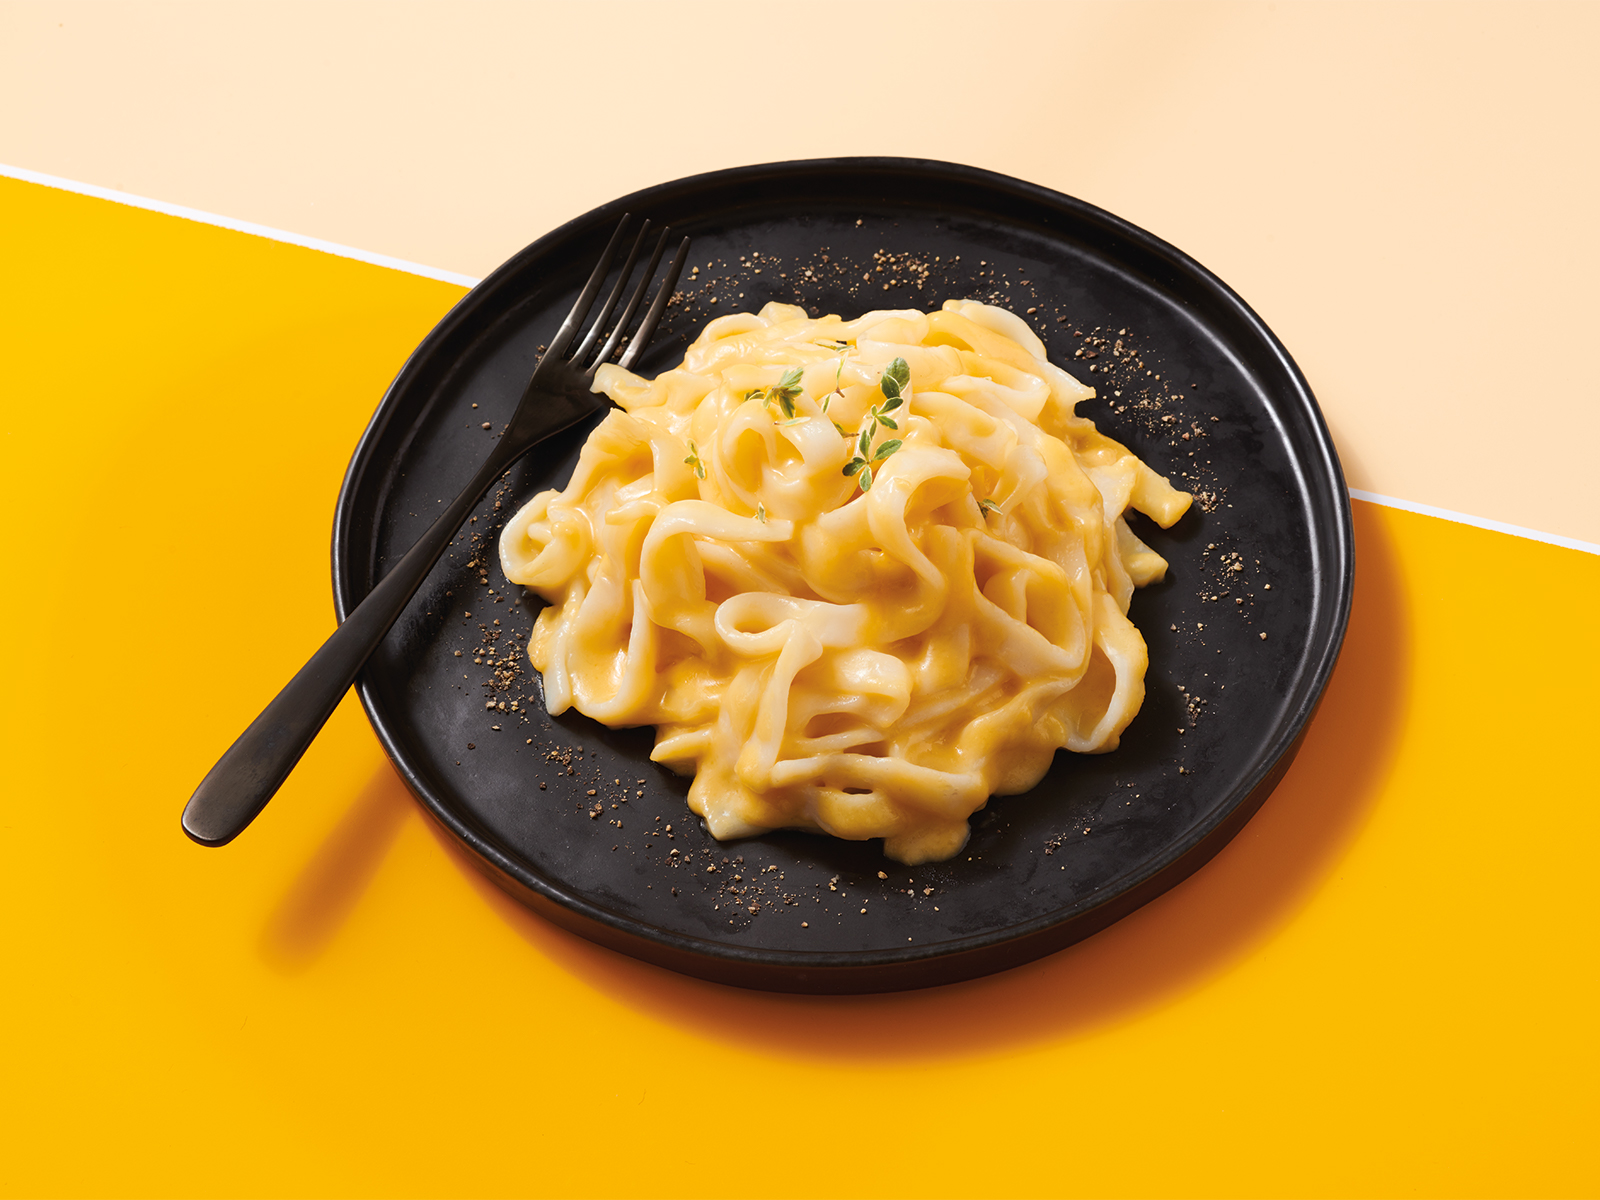 Cheesy Protein Noodles